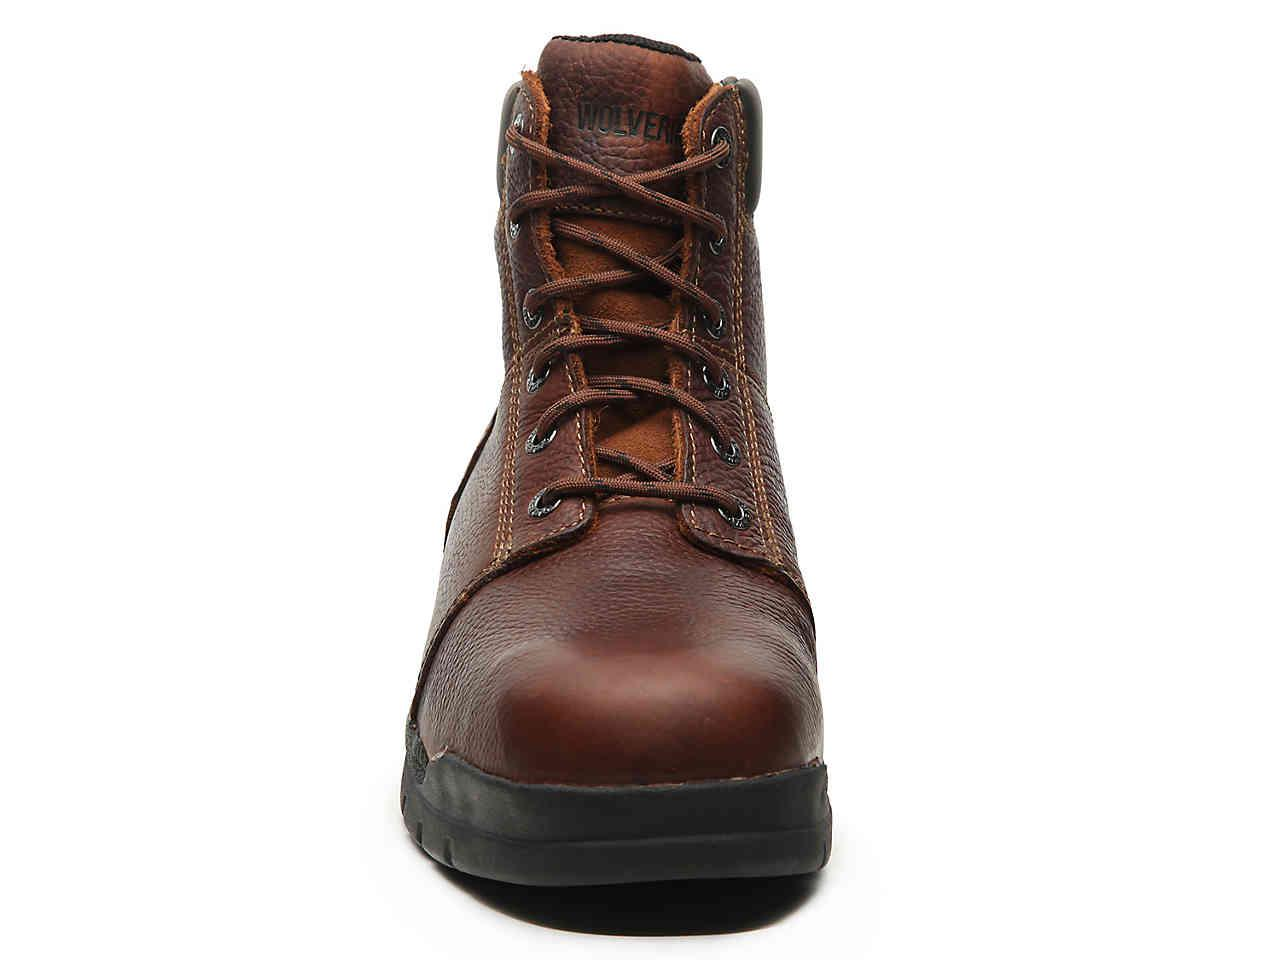 460524e7e08 Lyst - Wolverine Marquette Work Boot in Brown for Men